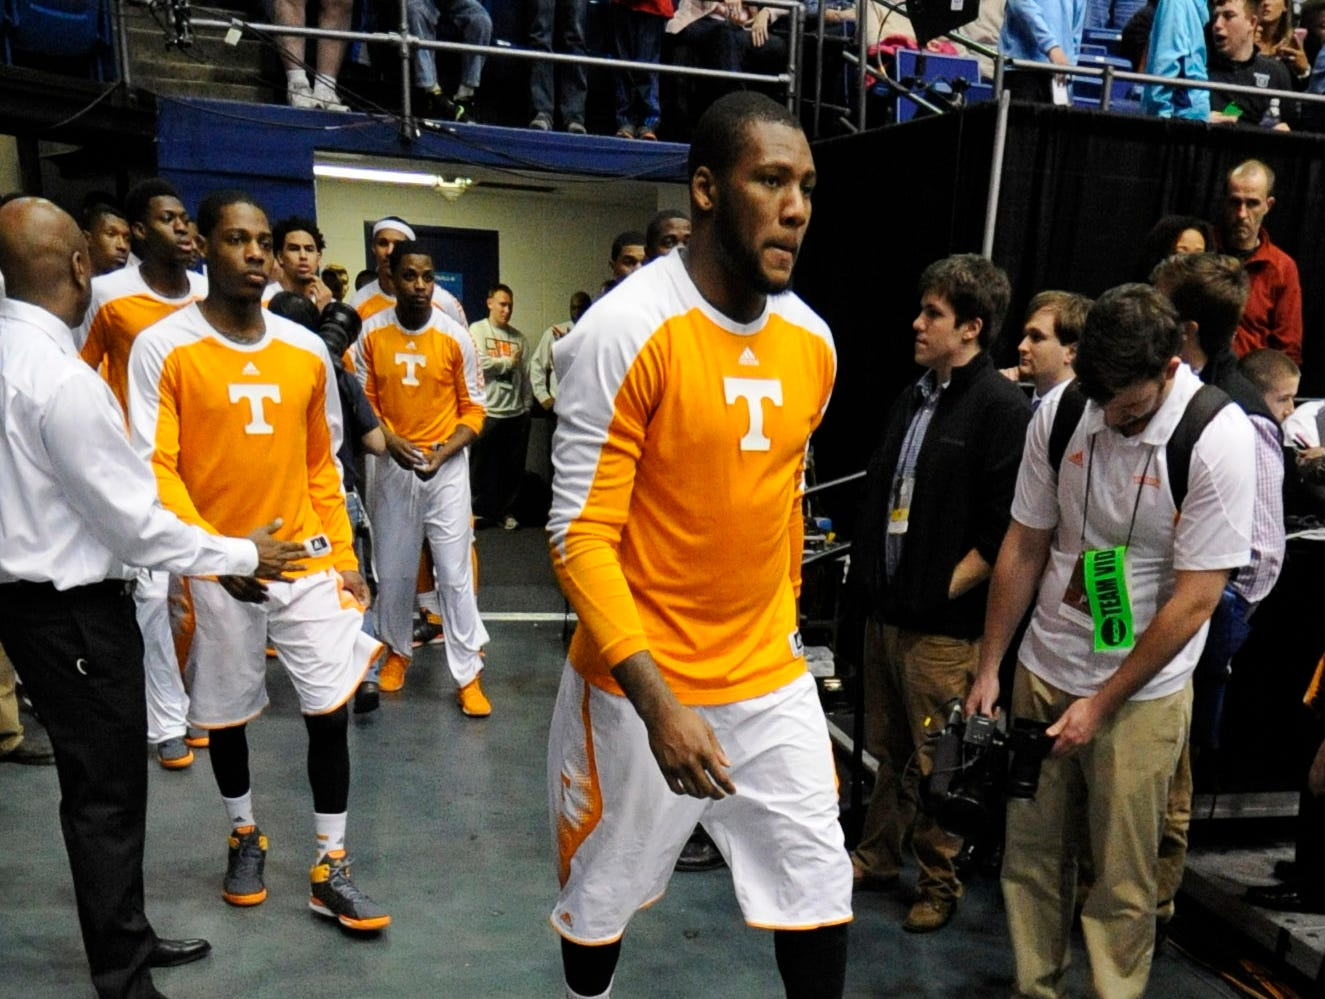 Tennessee forward Jeronne Maymon (34) takes the court with teammates before an NCAA tournament First Four play-in game against Iowa at the University of Dayton Arena in Dayton, Ohio on Wednesday, March 19, 2014.